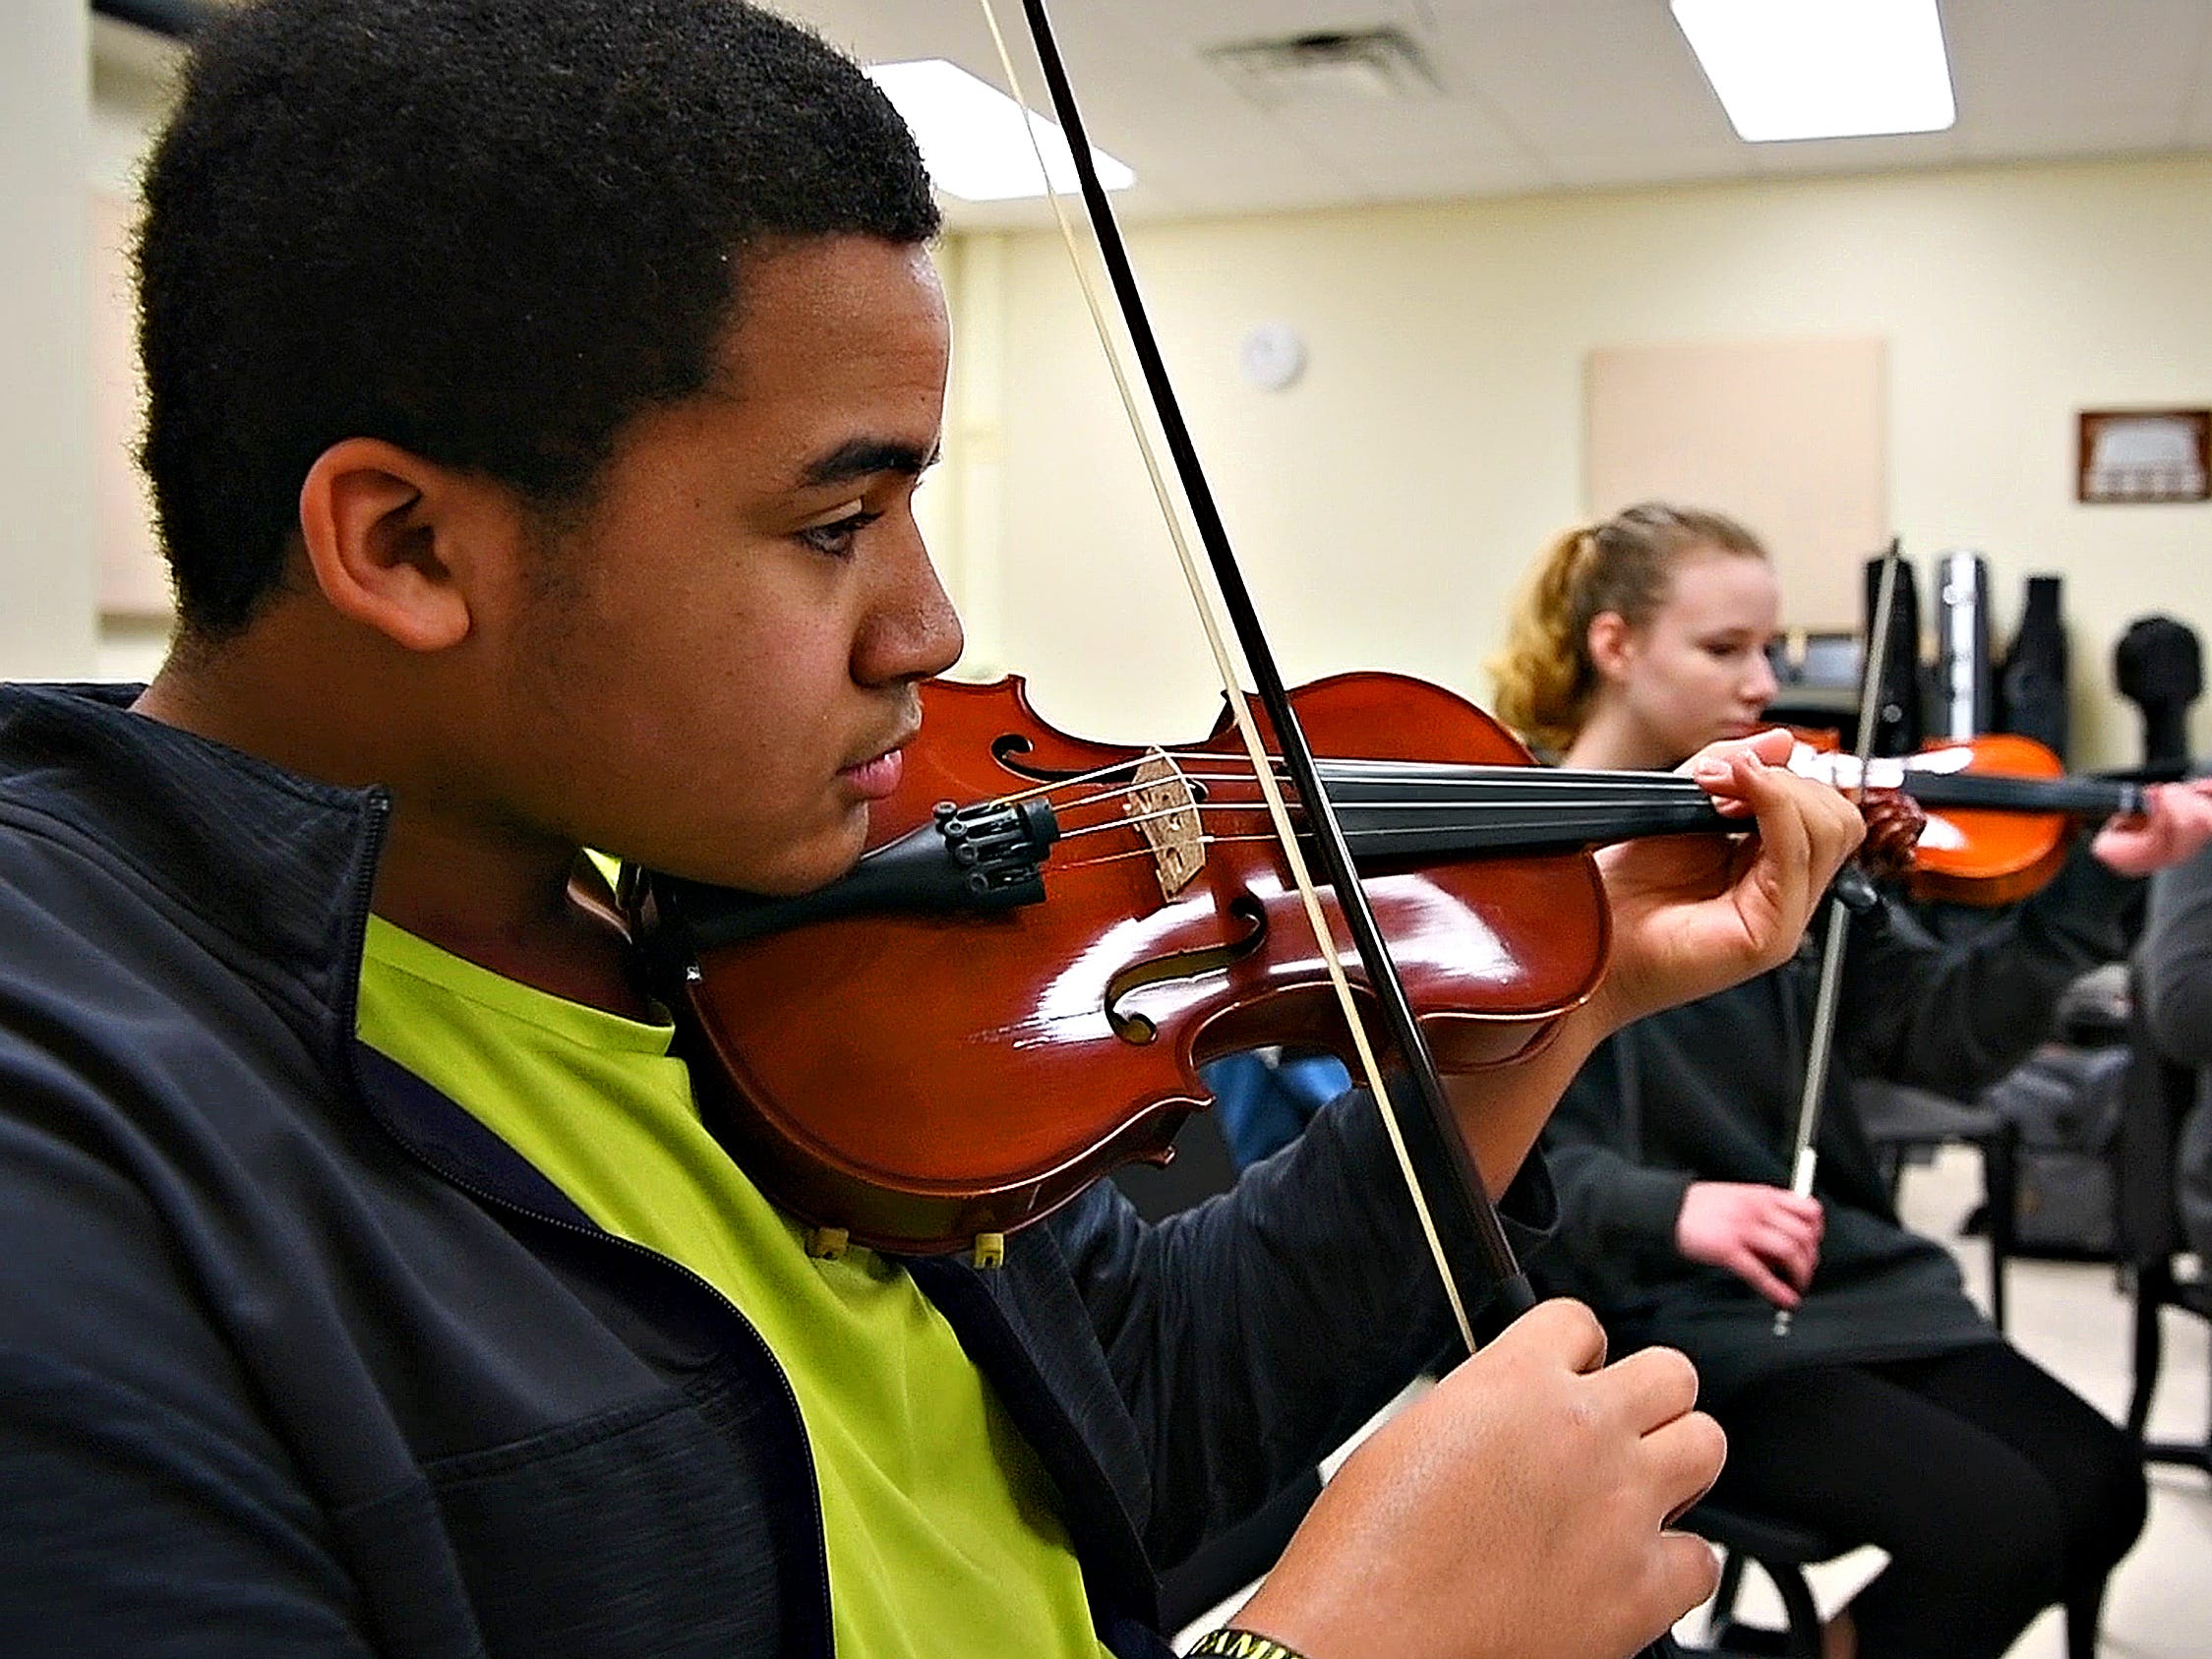 Chandler Adams plays violin while his ensemble works with Red Lion alumnus Derek Cooper, a working composer in New York, gestures while working with a student ensemble at Red Lion Area High School in Red Lion, Tuesday, March 5, 2019. Dawn J. Sagert photo